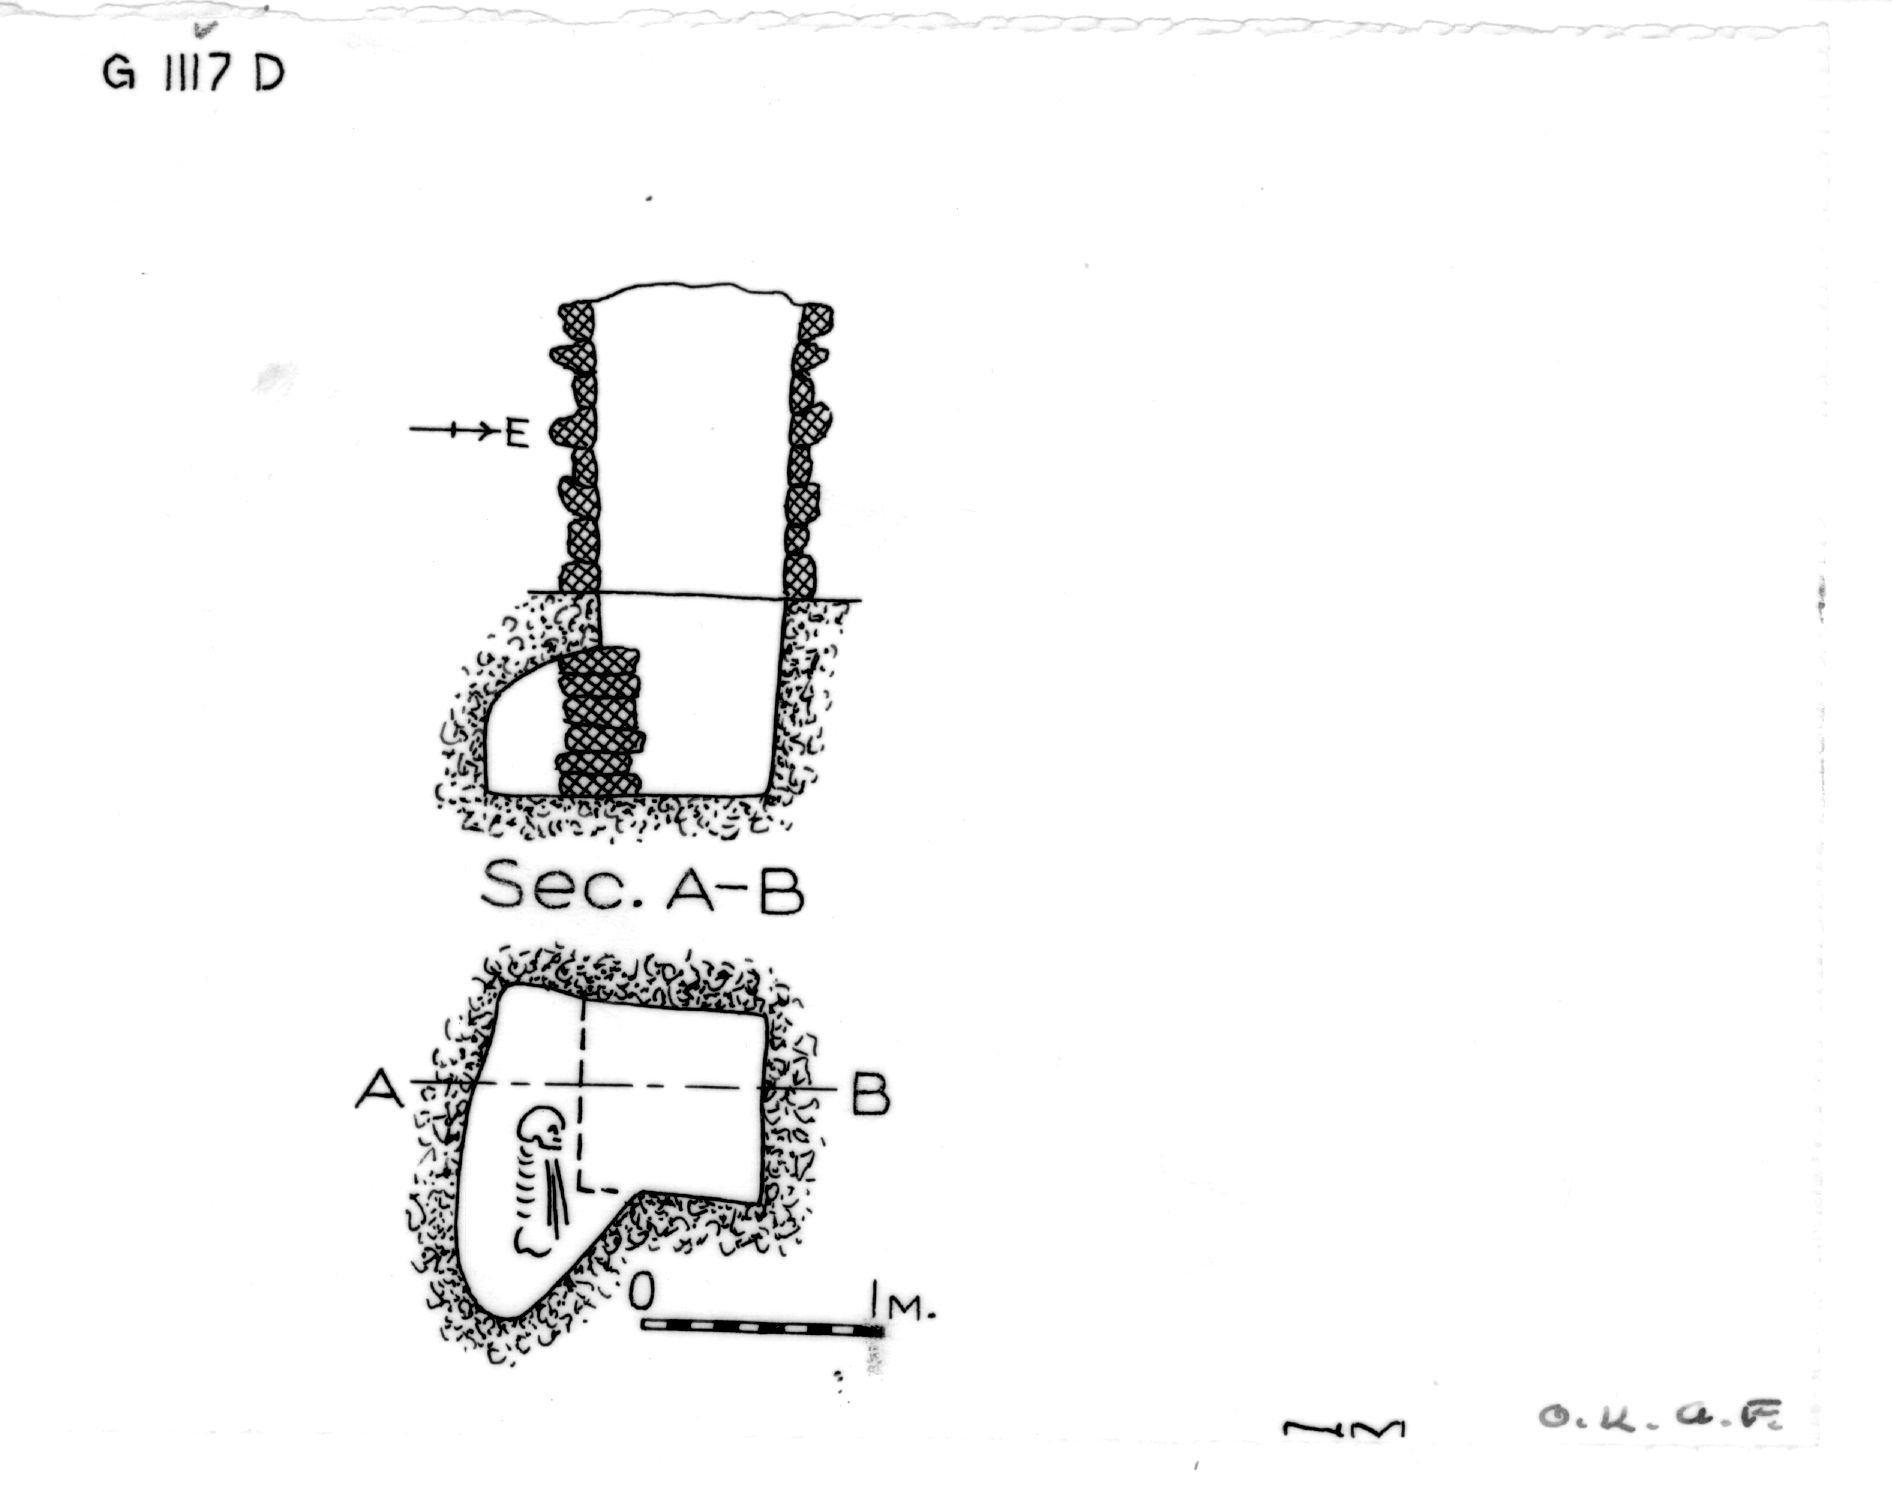 Maps and plans: G 1117, Shaft D